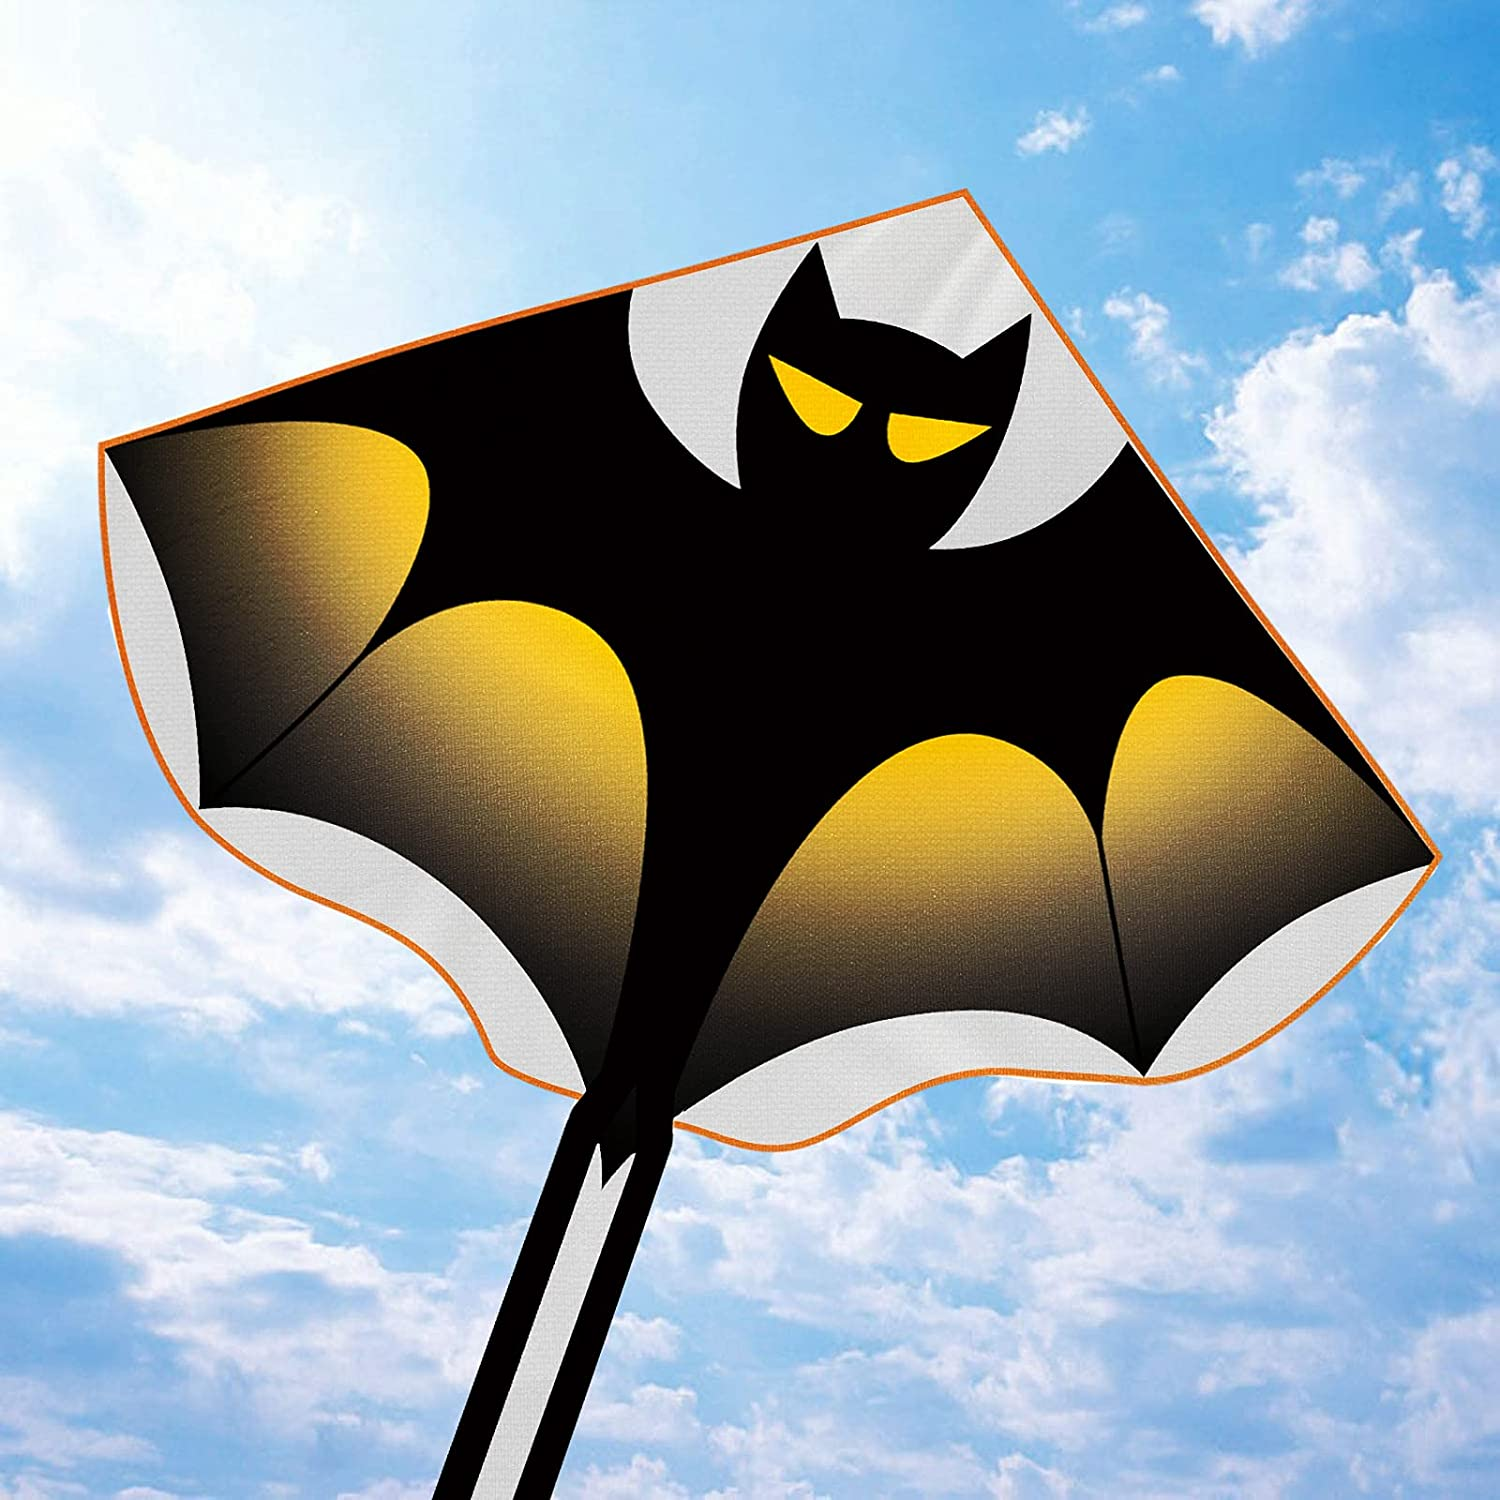 Hymaz Kite Limited price Kites for Kids Adults Easy Fly Best to OFFer Gir